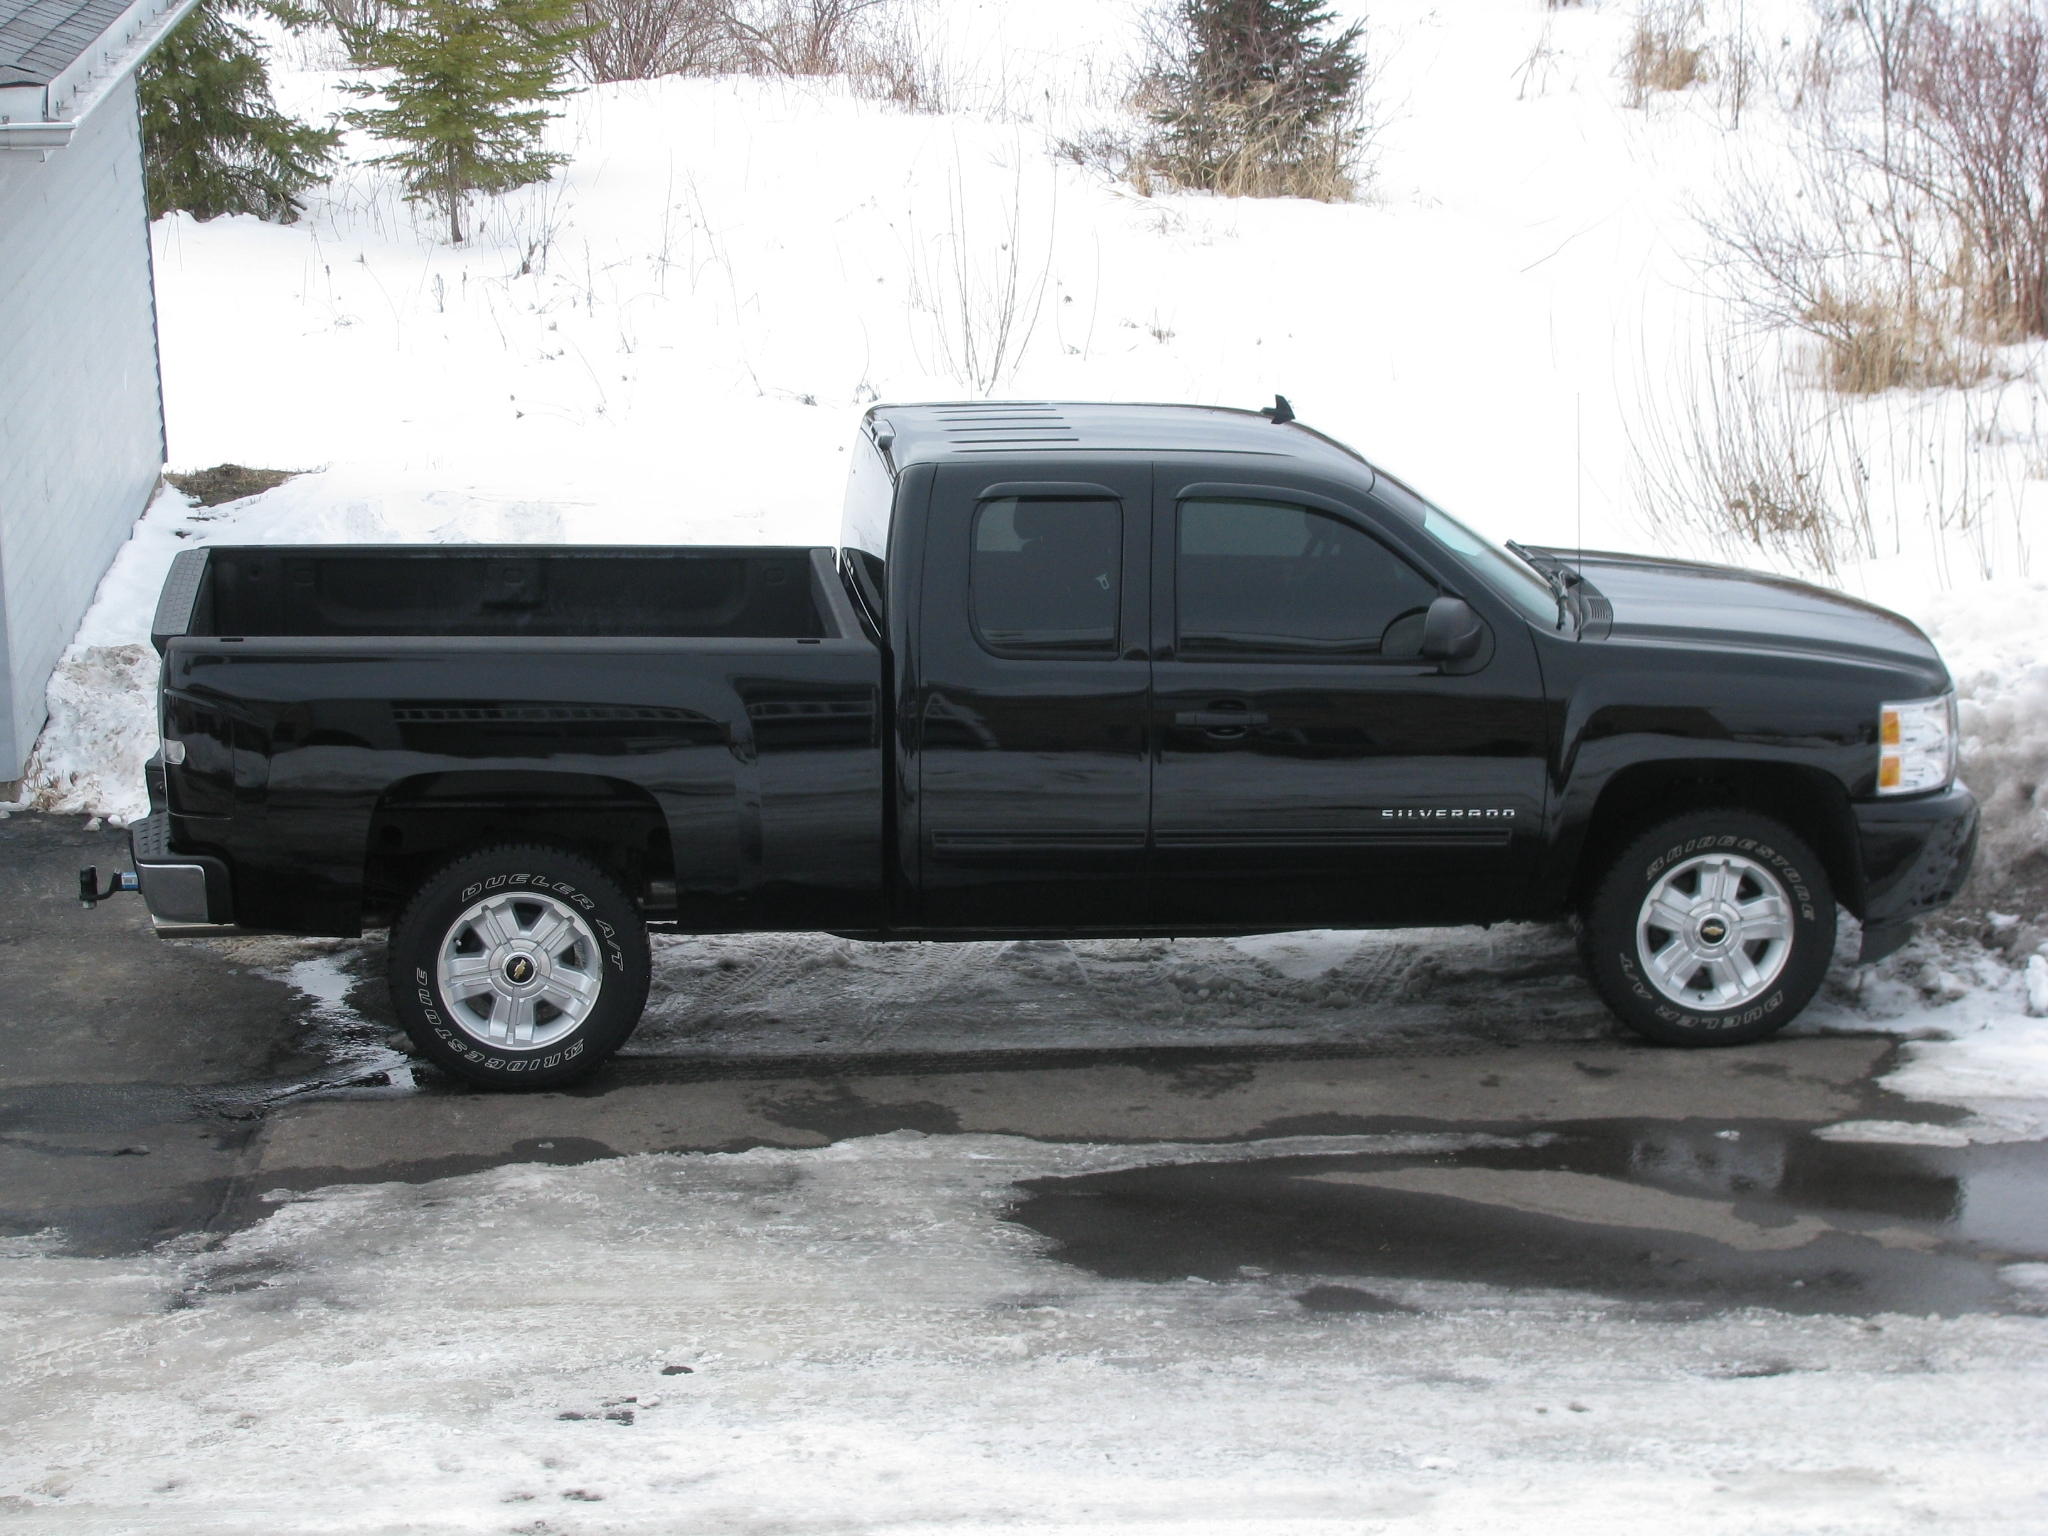 xsilveradoserbx 2009 chevrolet silverado 1500 extended cab. Black Bedroom Furniture Sets. Home Design Ideas